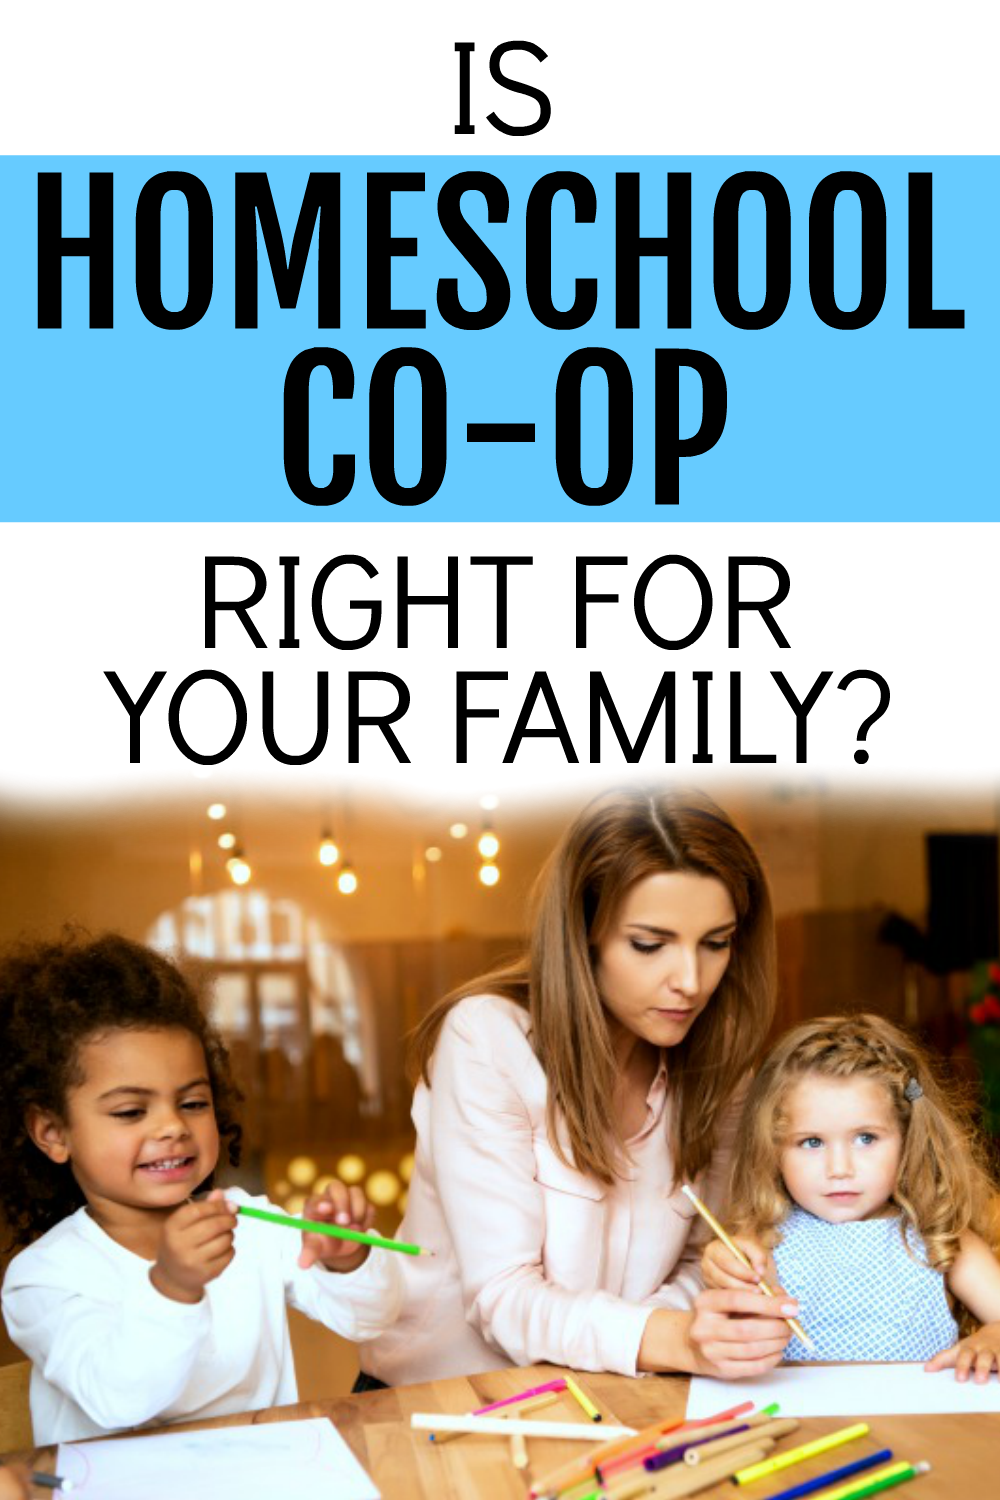 IS A HOMESCHOOL CO OP RIGHT FOR YOUR FAMILY?